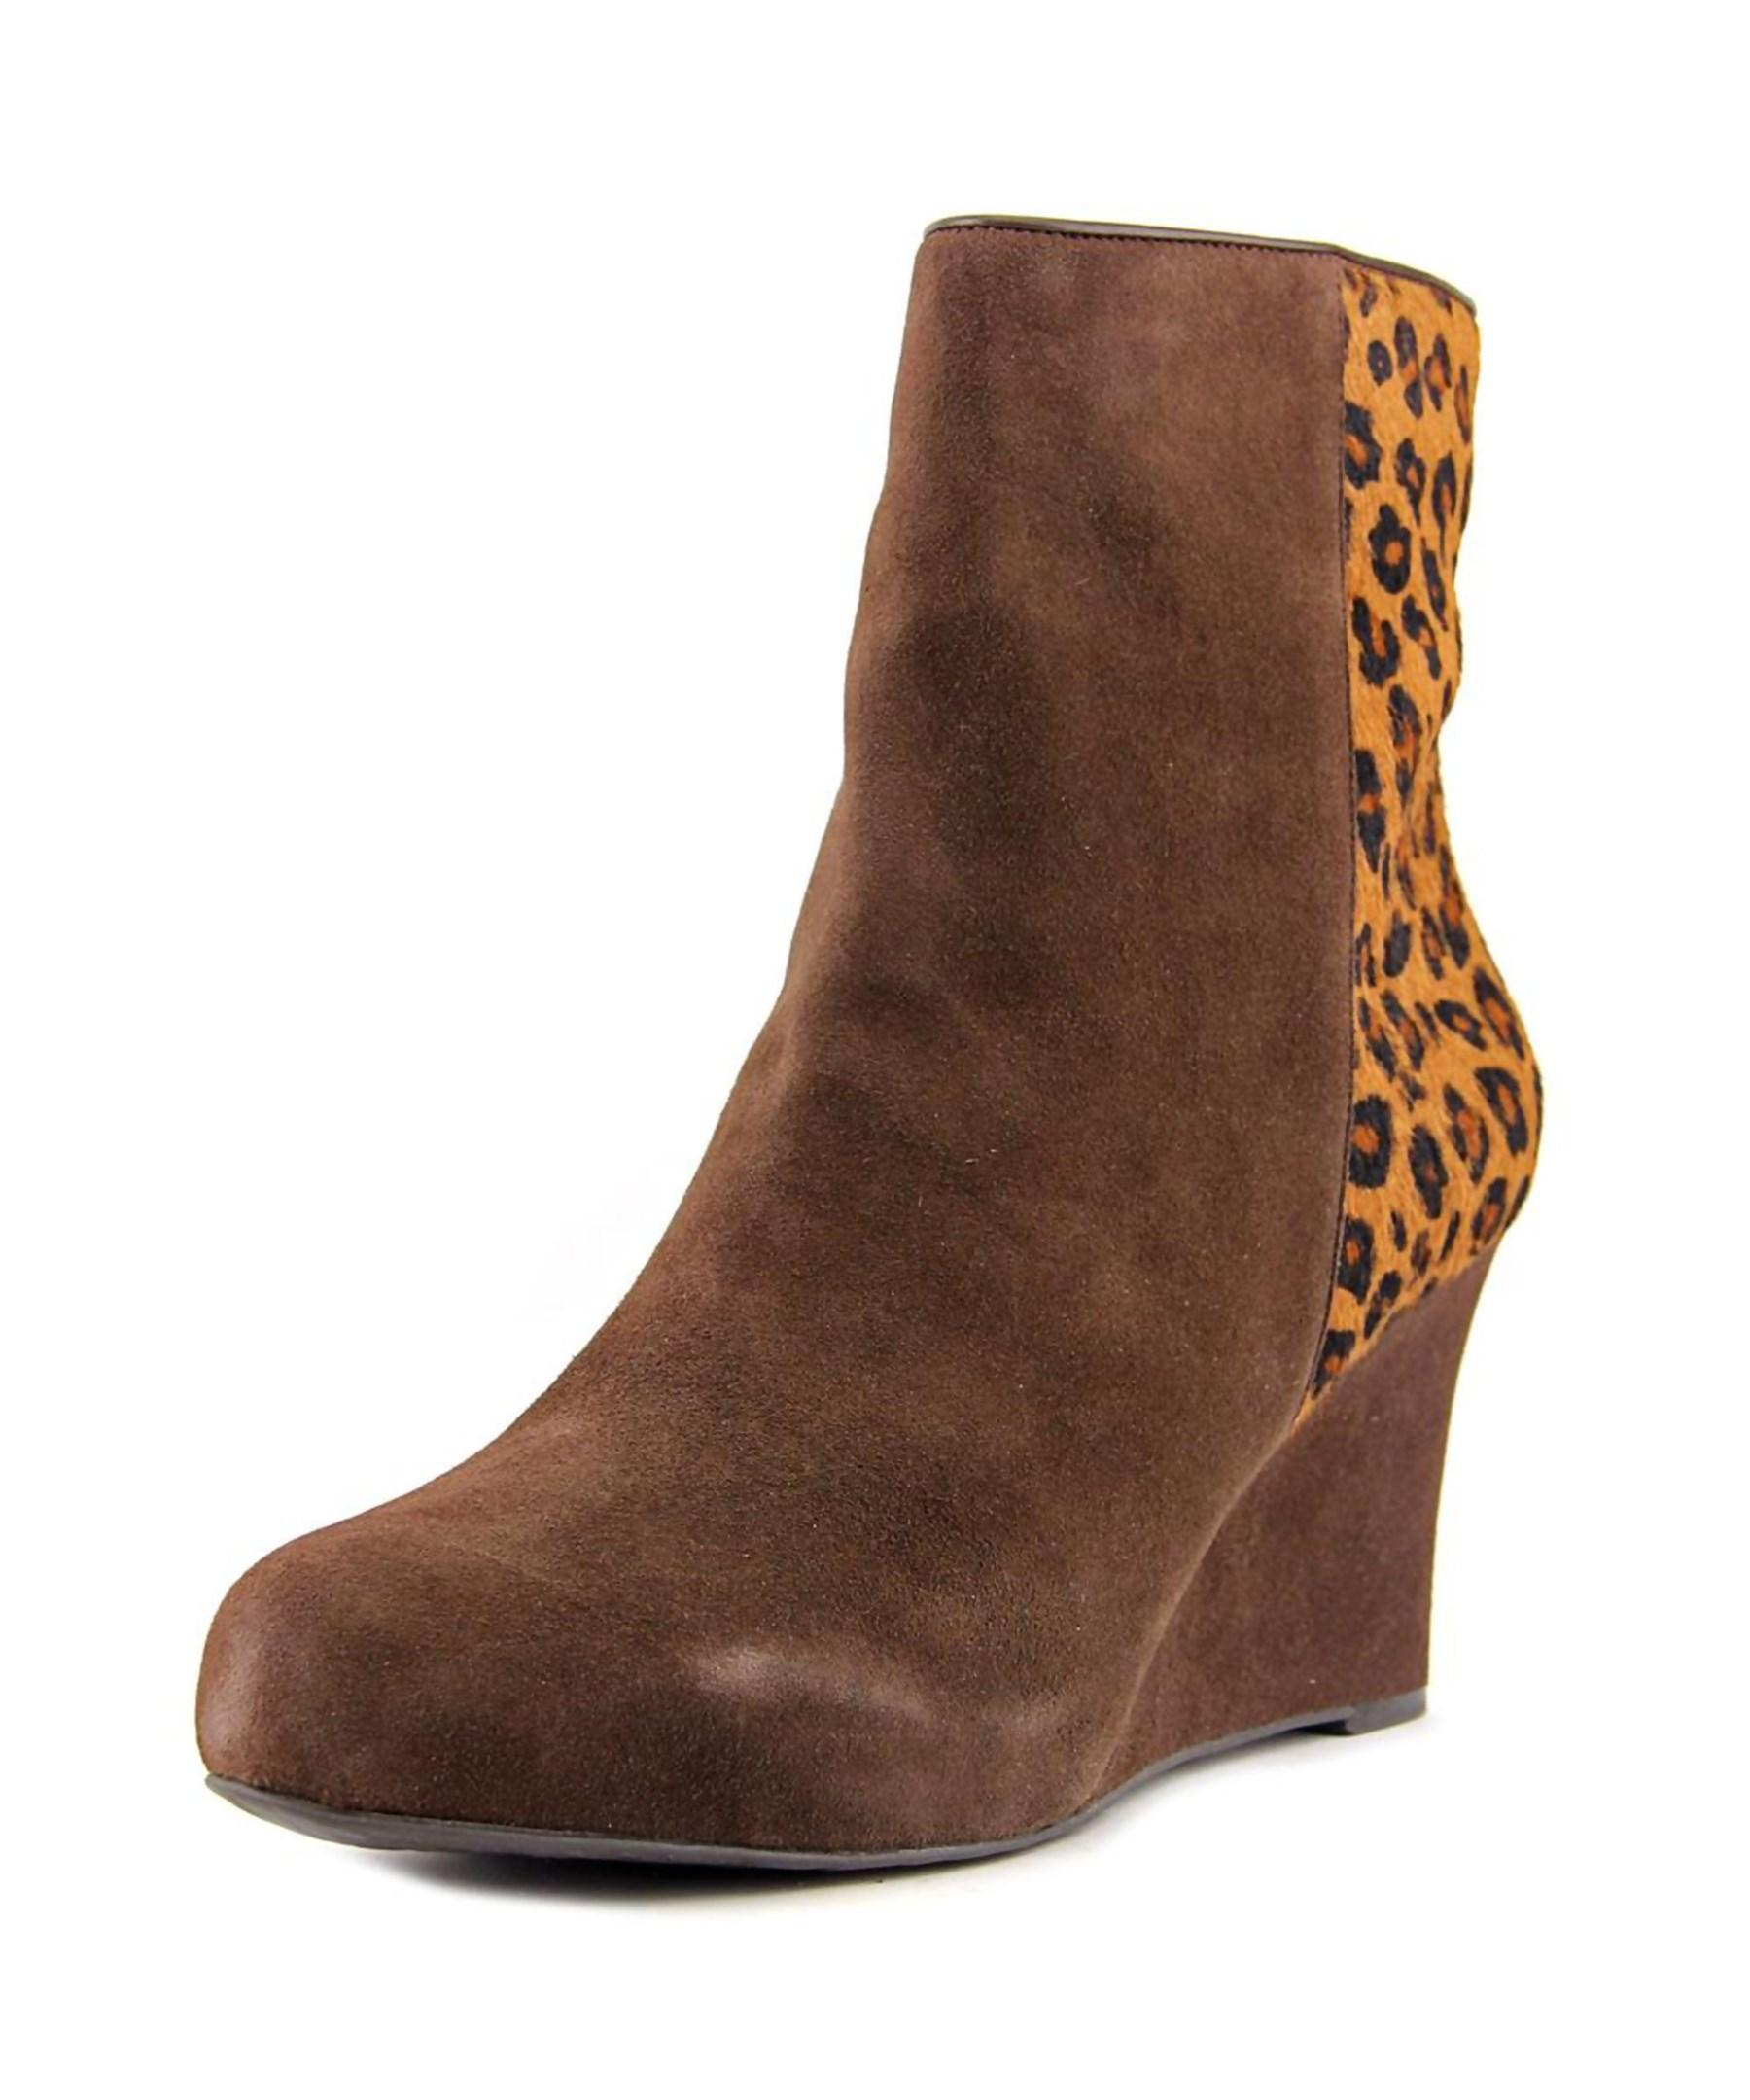 rockport sto7w85 bootie toe suede ankle boot in